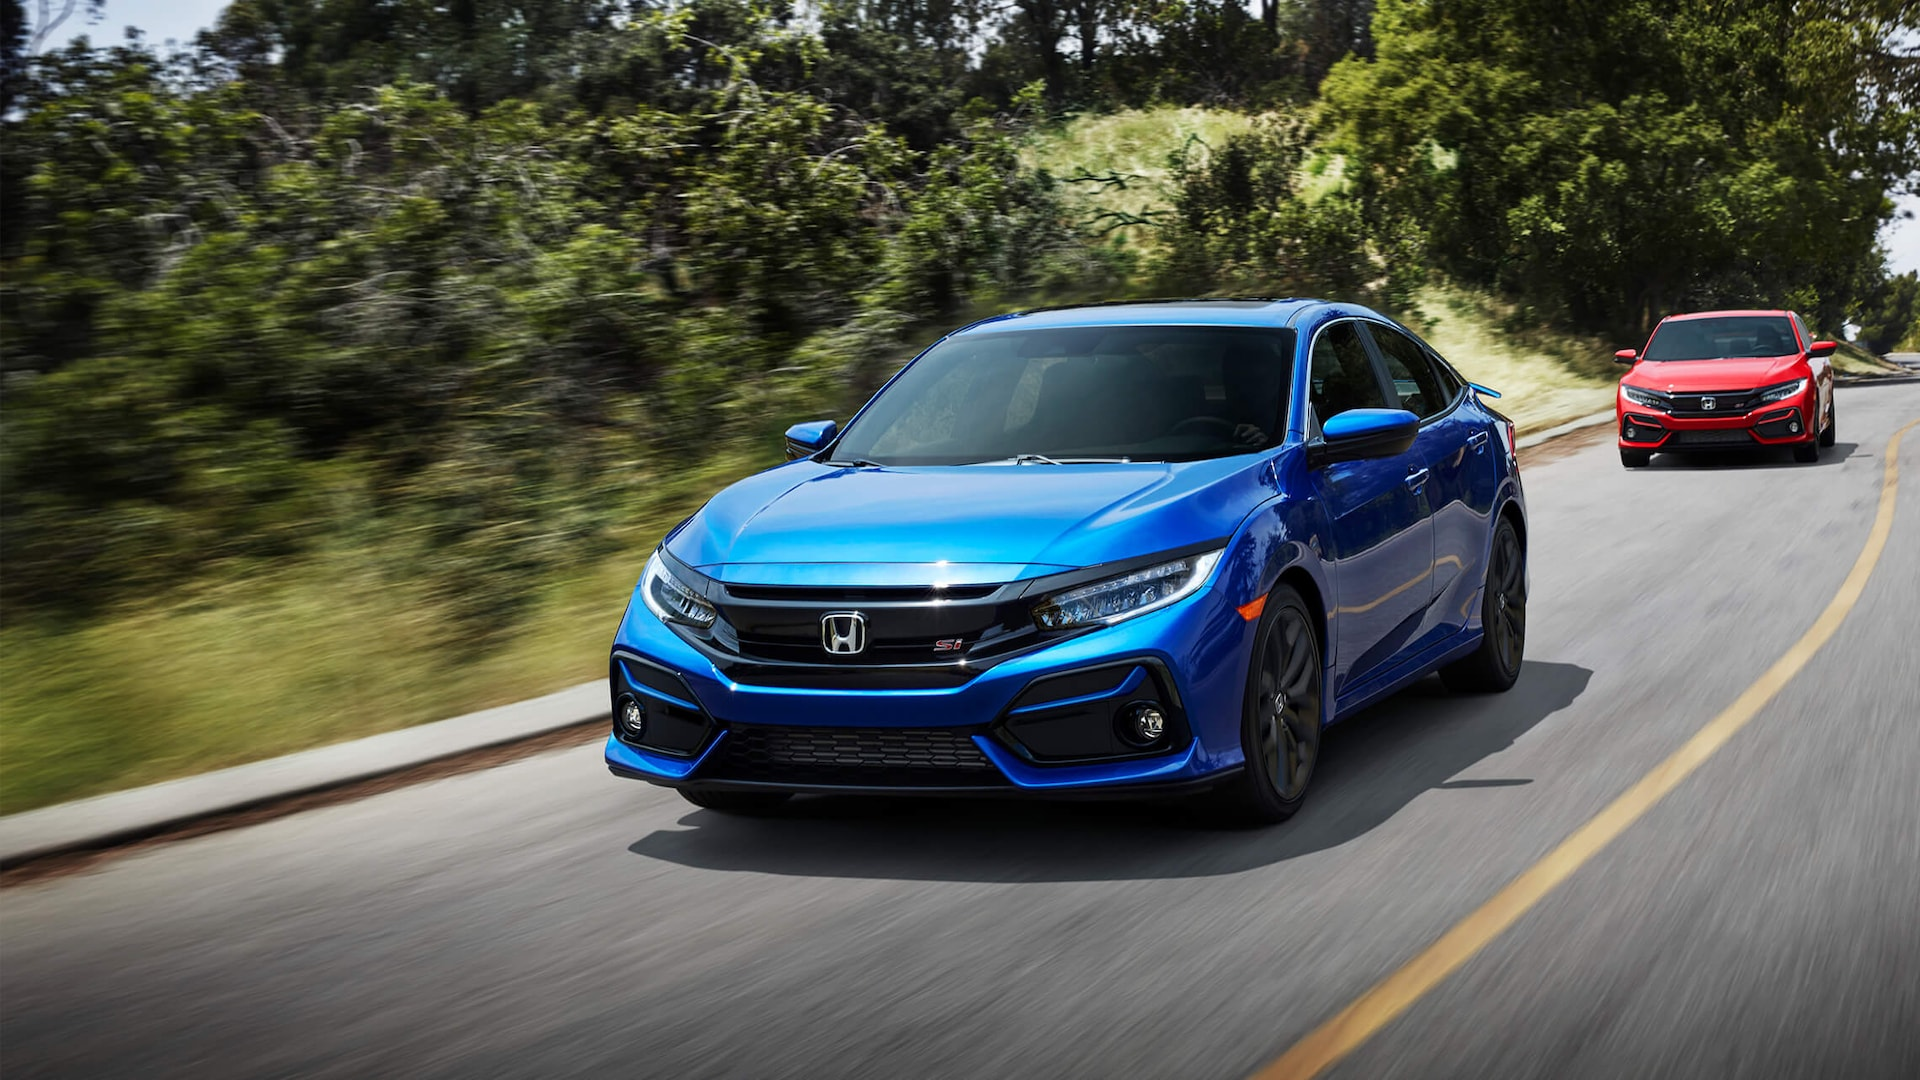 Front 3/4 driver's side view of 2020 Honda Civic Si Sedan in Aegean Blue Metallic driving on mountain road.